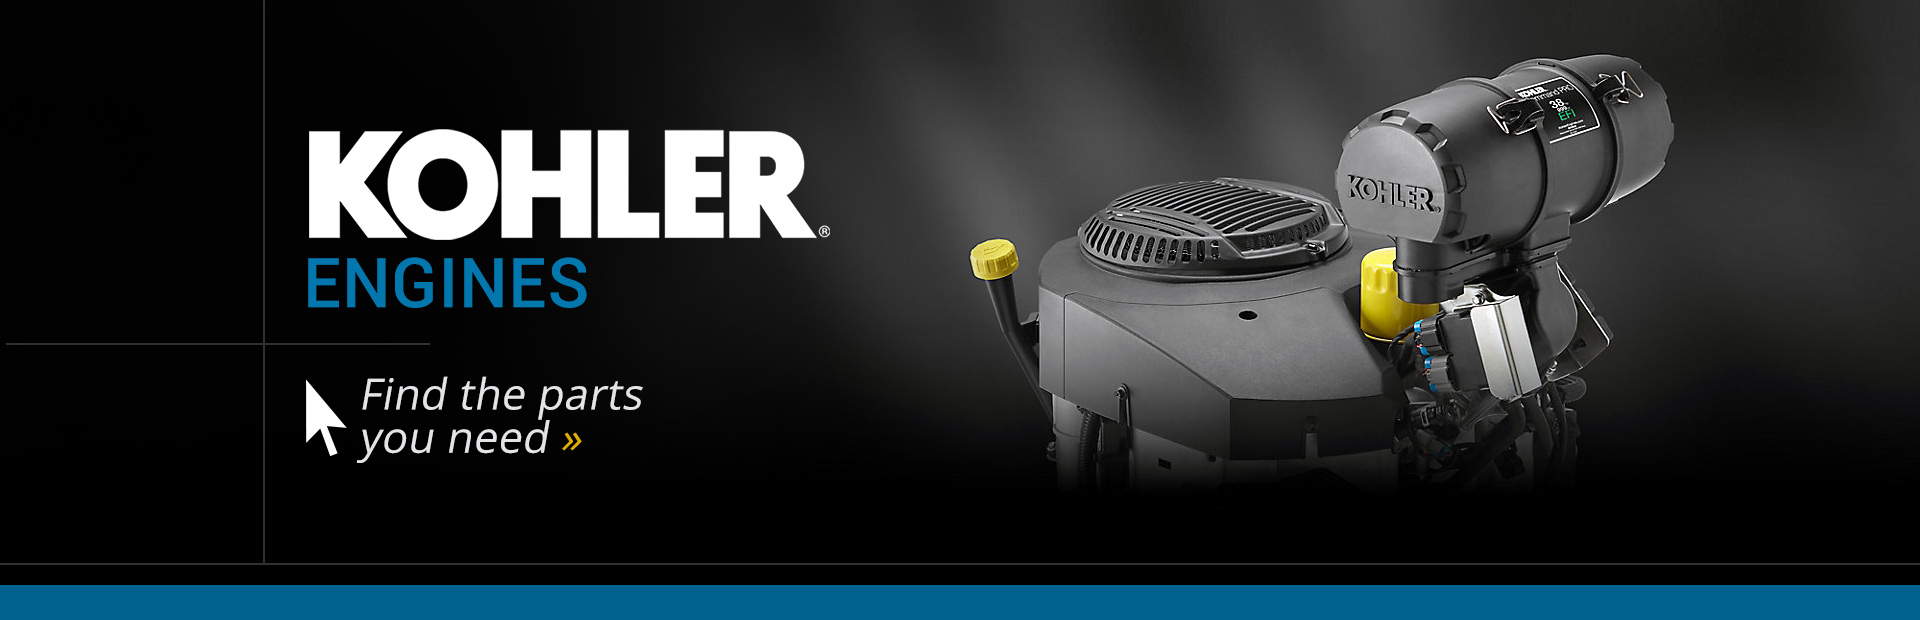 Kohler Engines: Click here to find the parts you need.